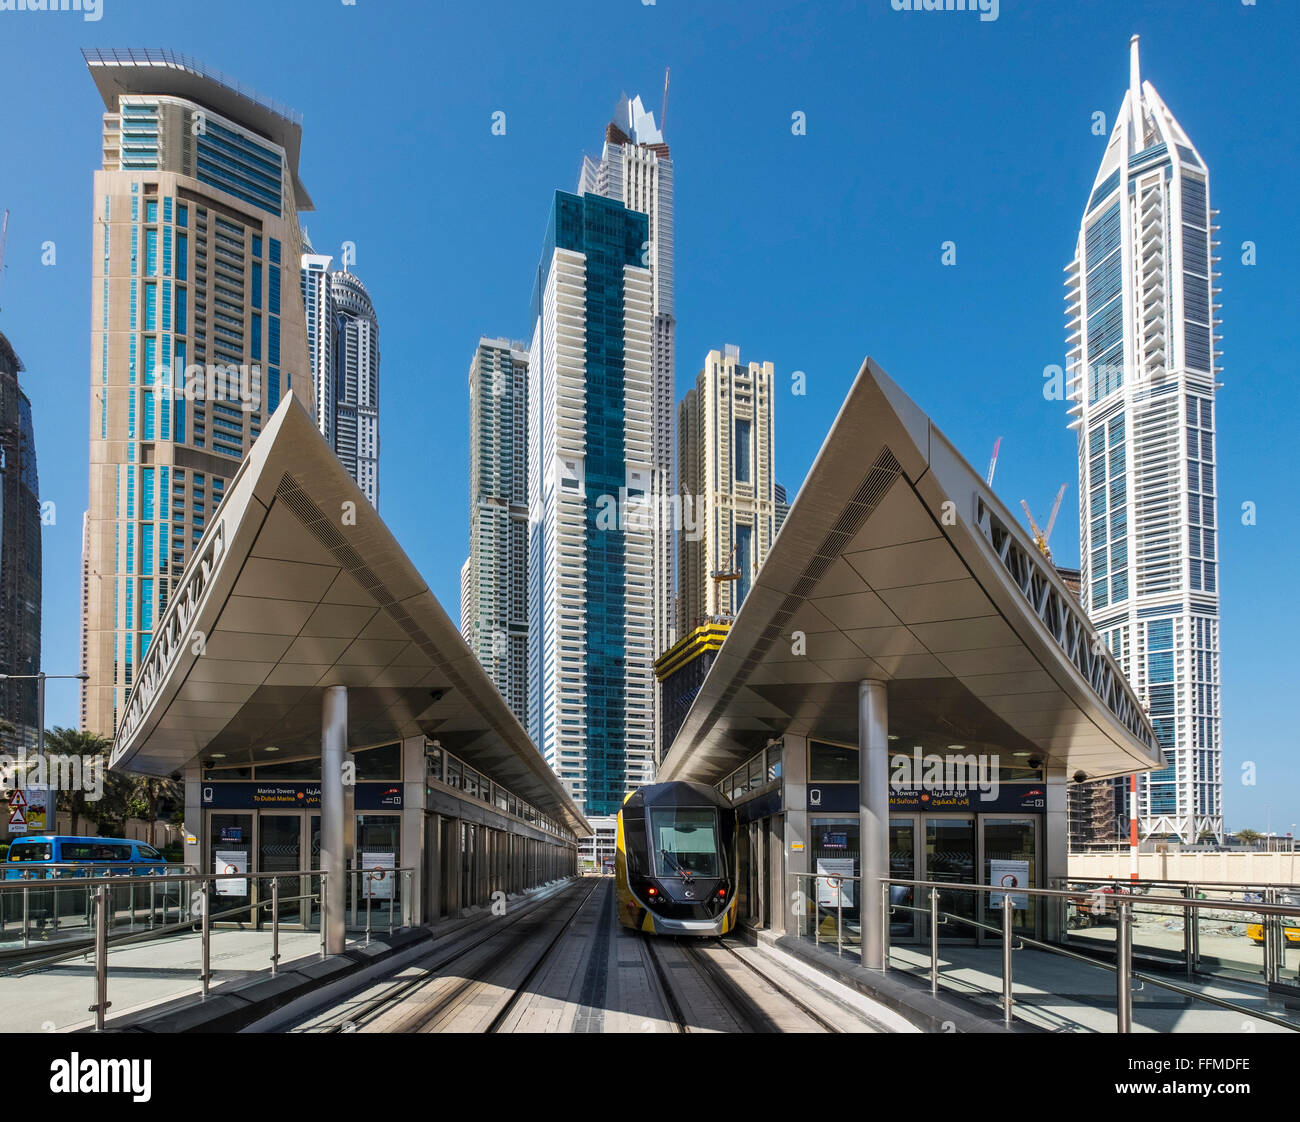 Modern railway station for Dubai Tram system in United Arab Emirates Stock Photo